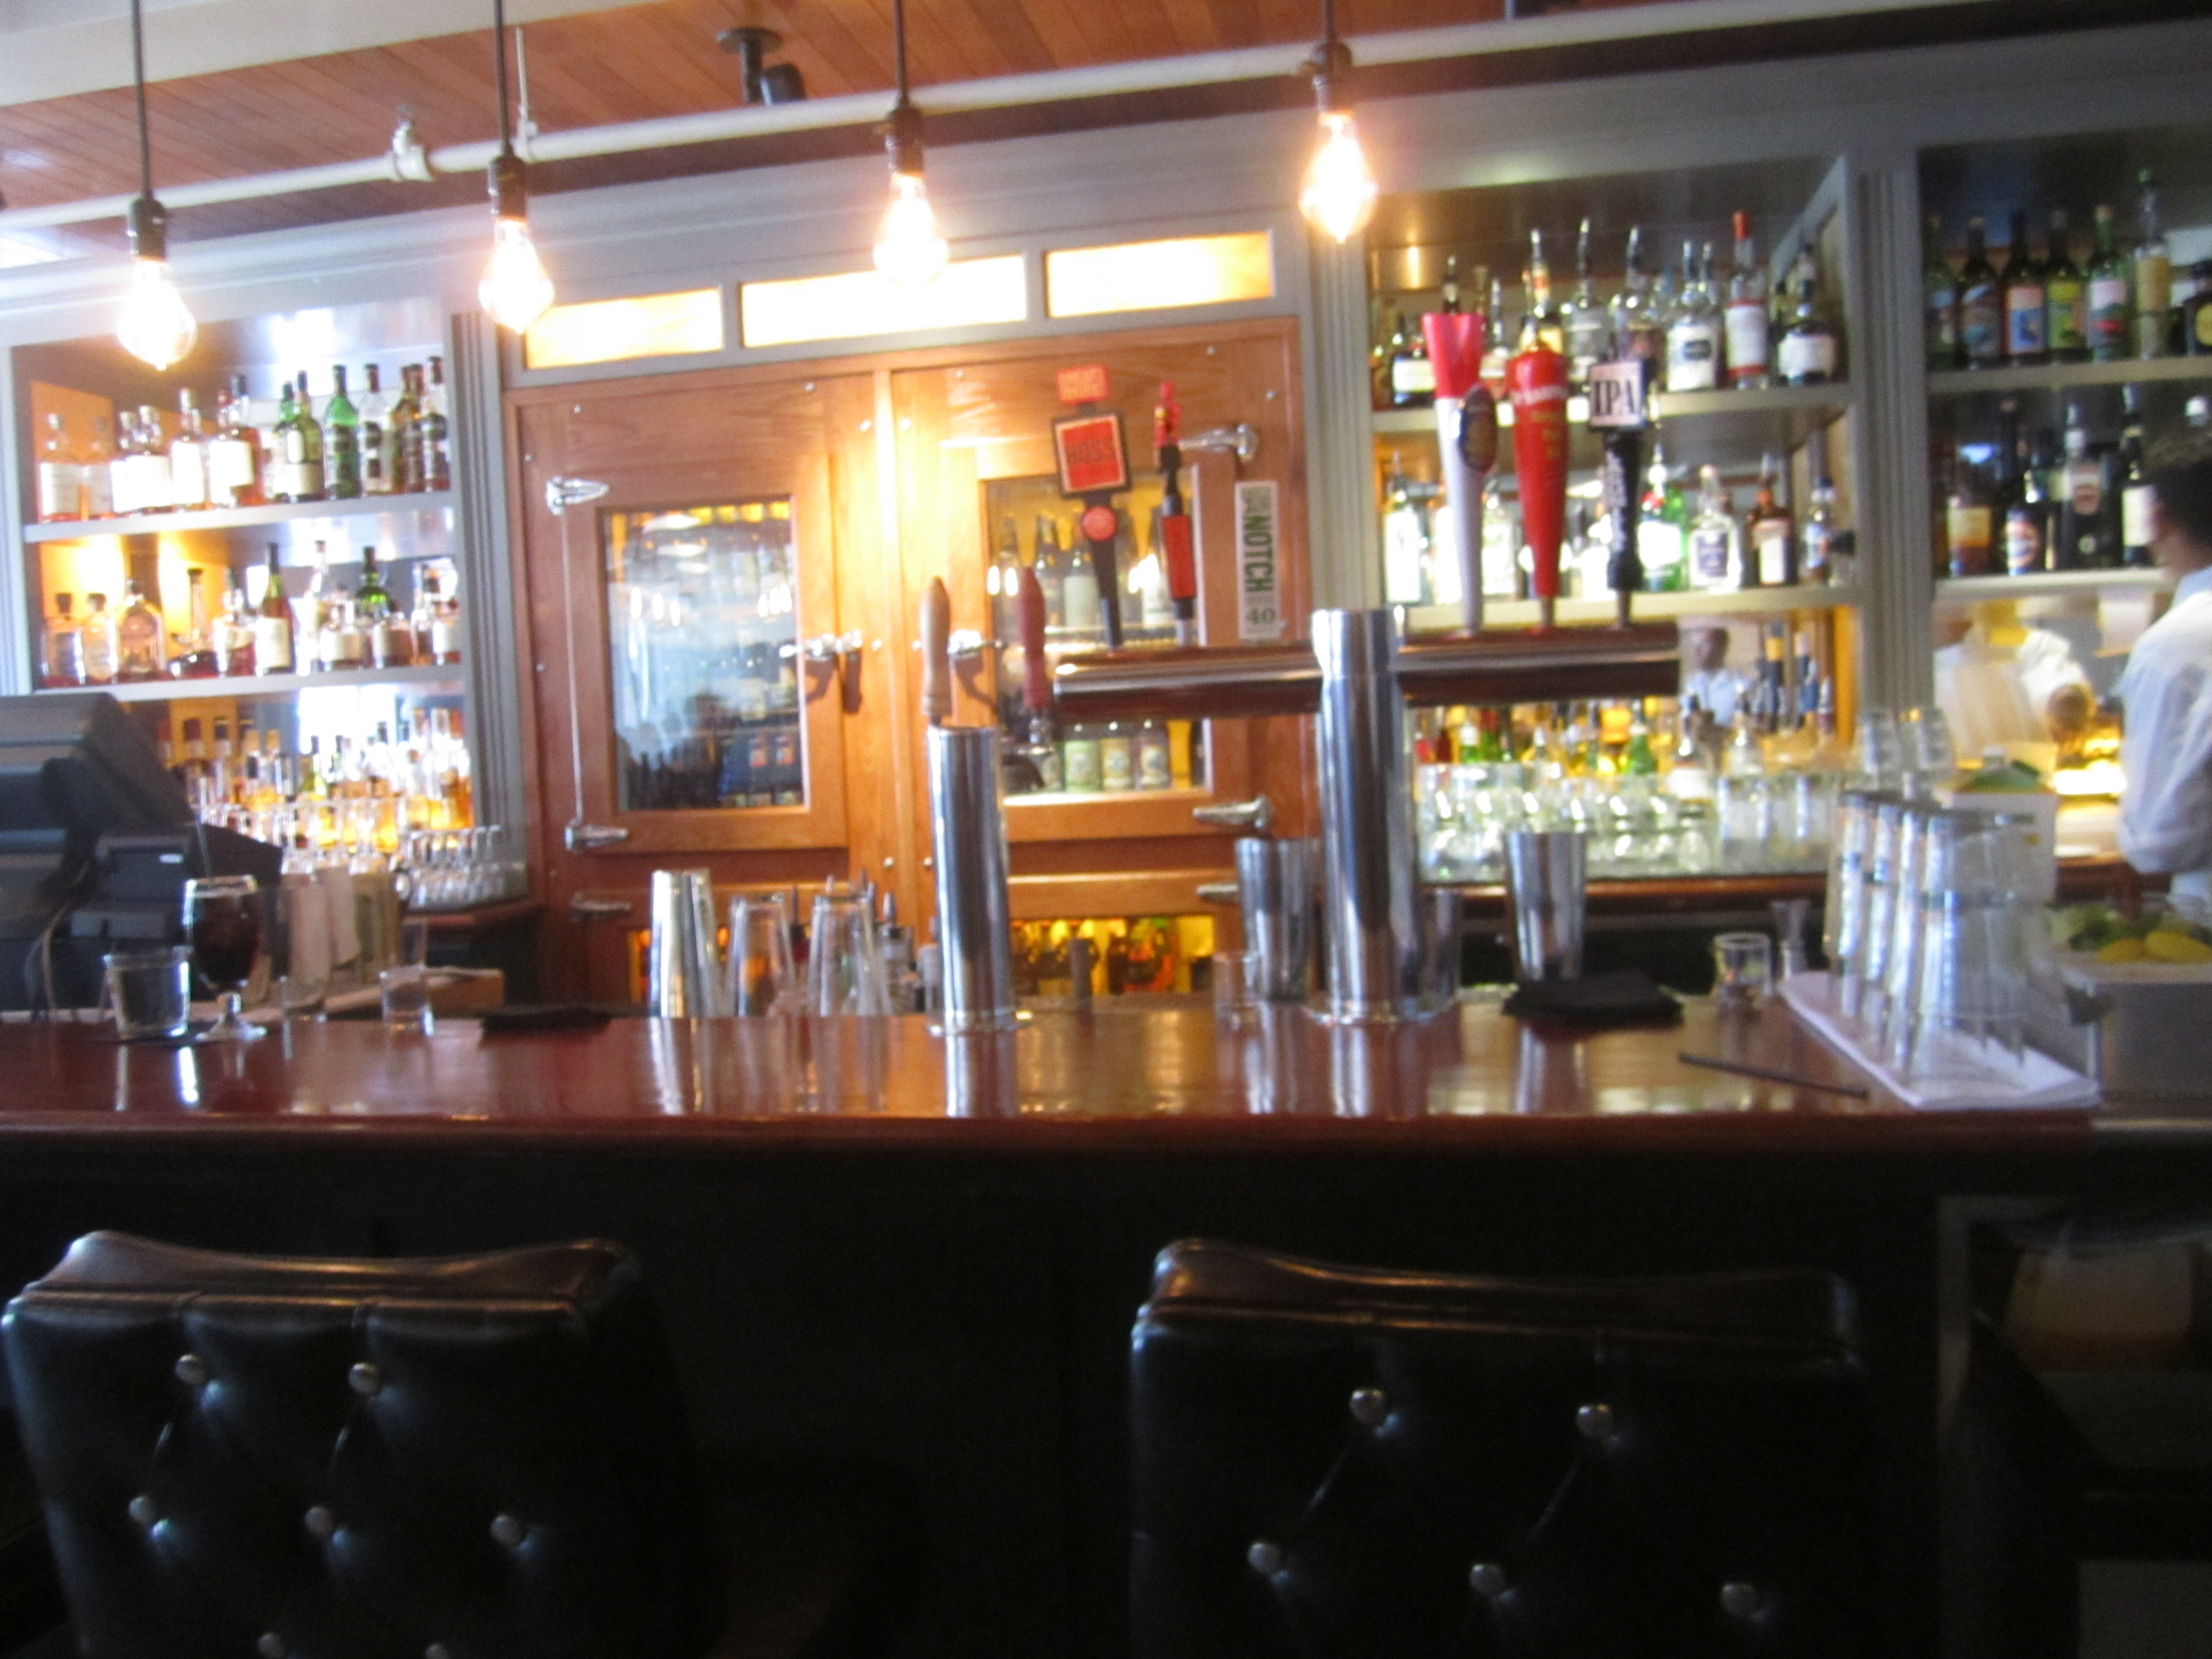 The Main Bar Area Is Warm With Luxurious Black Bar Stools.